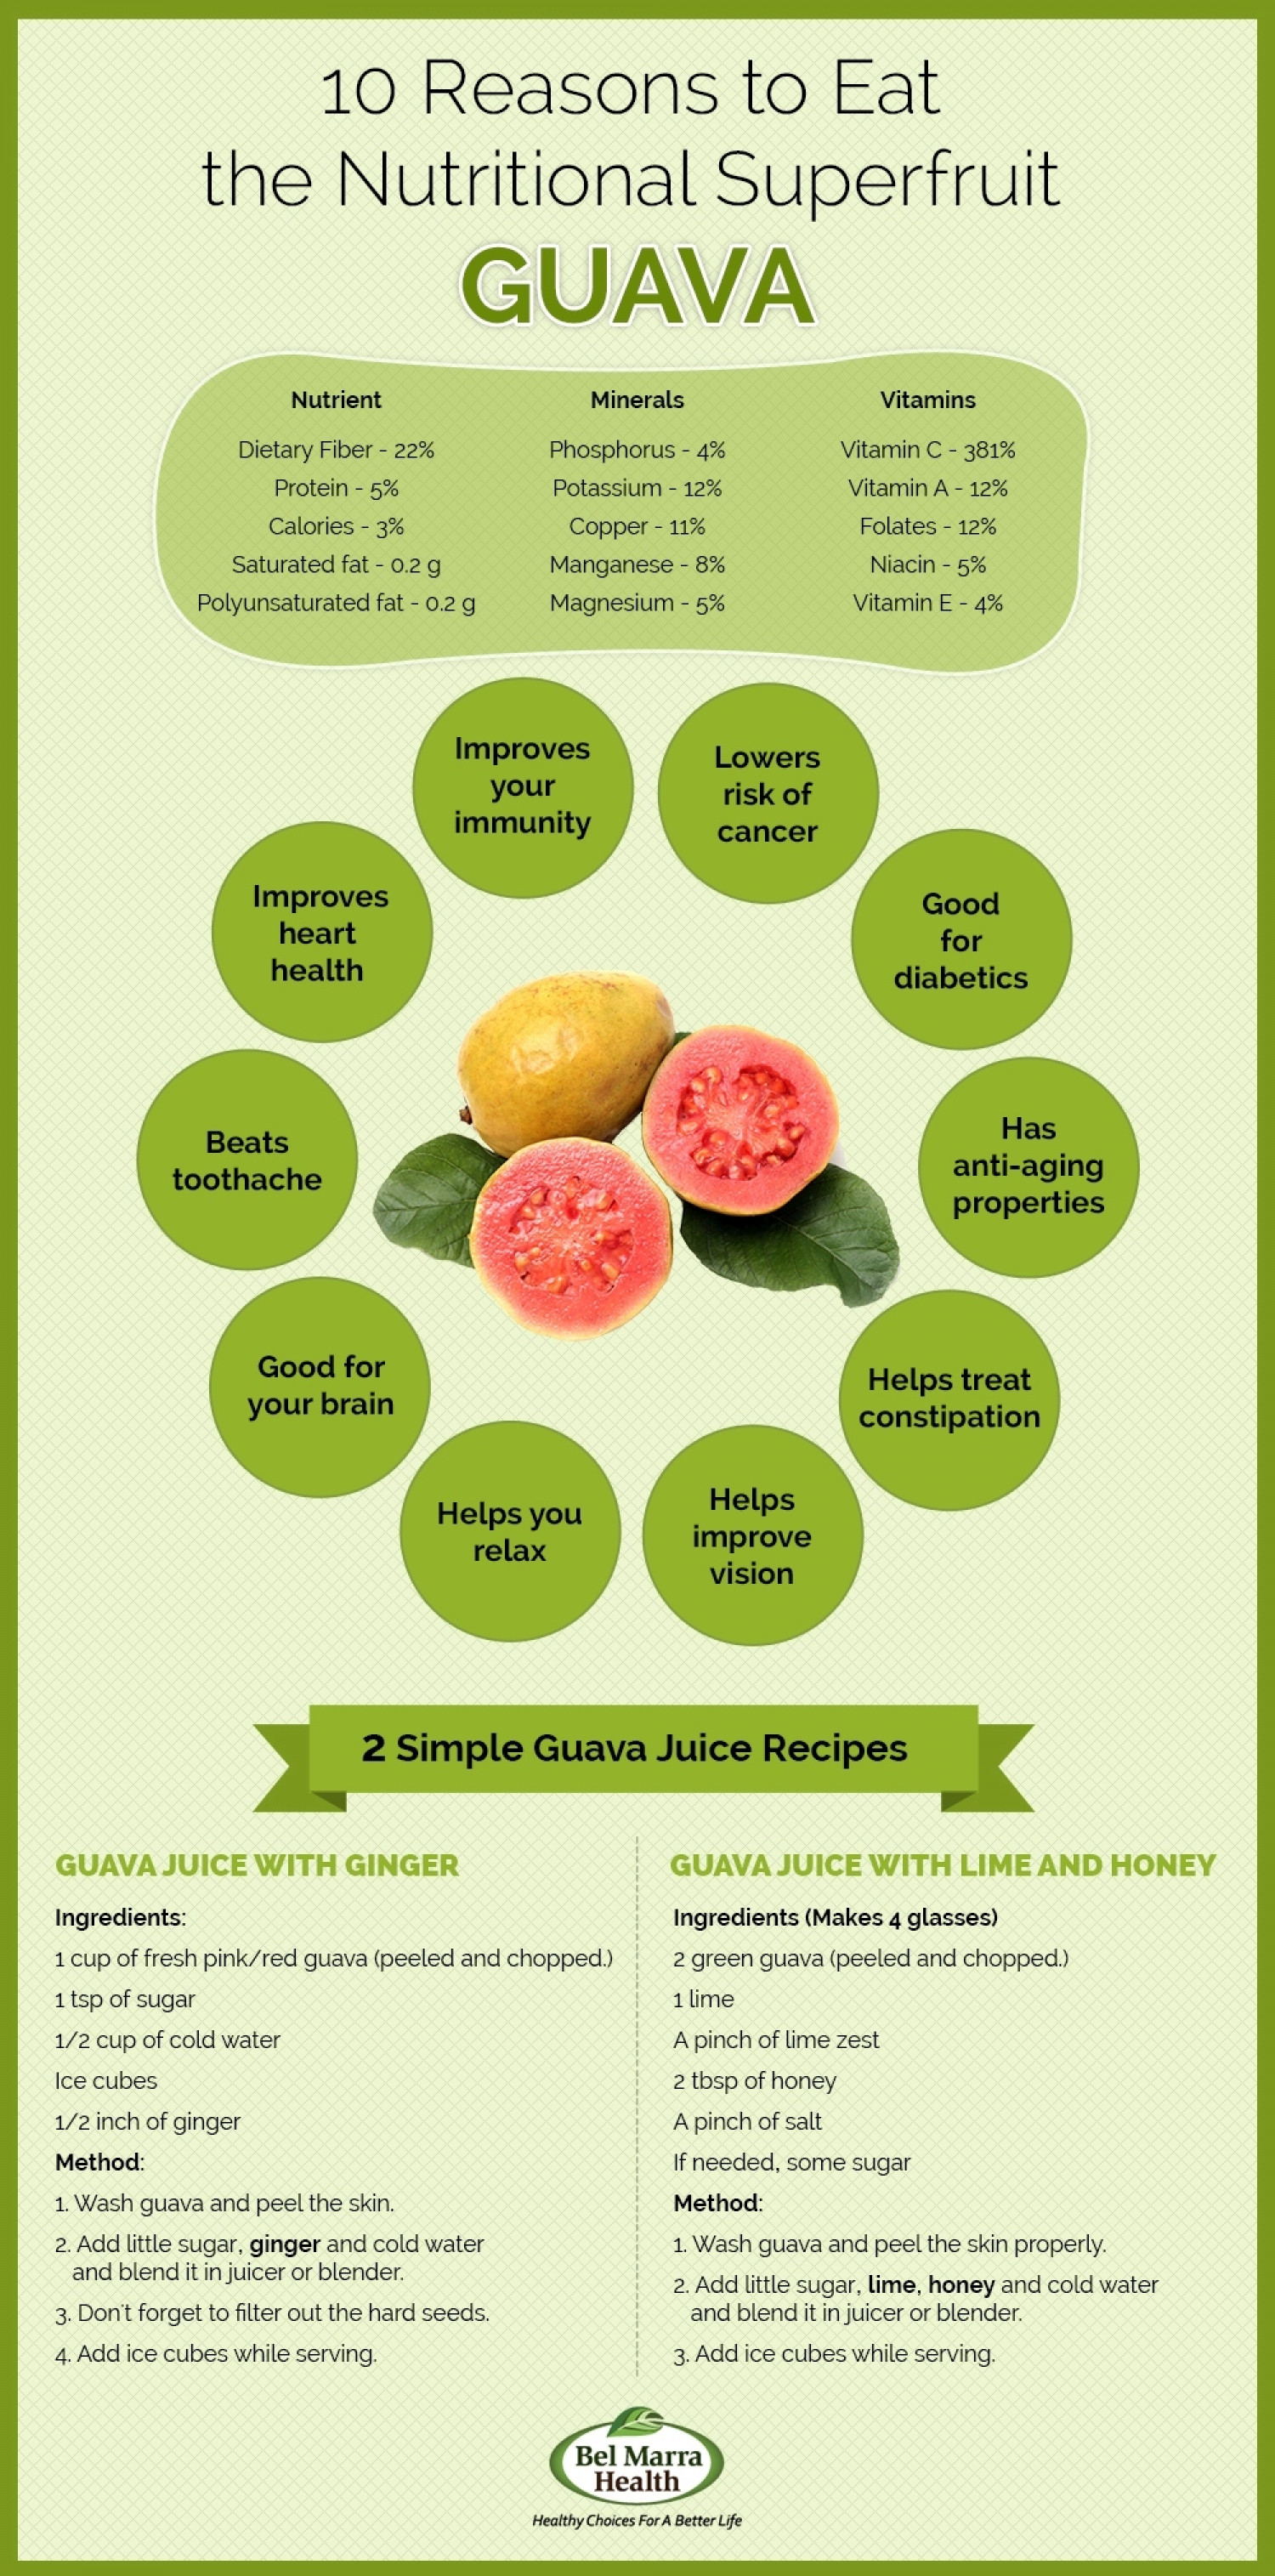 10 Benefits of the superfruit - Guava Infographic